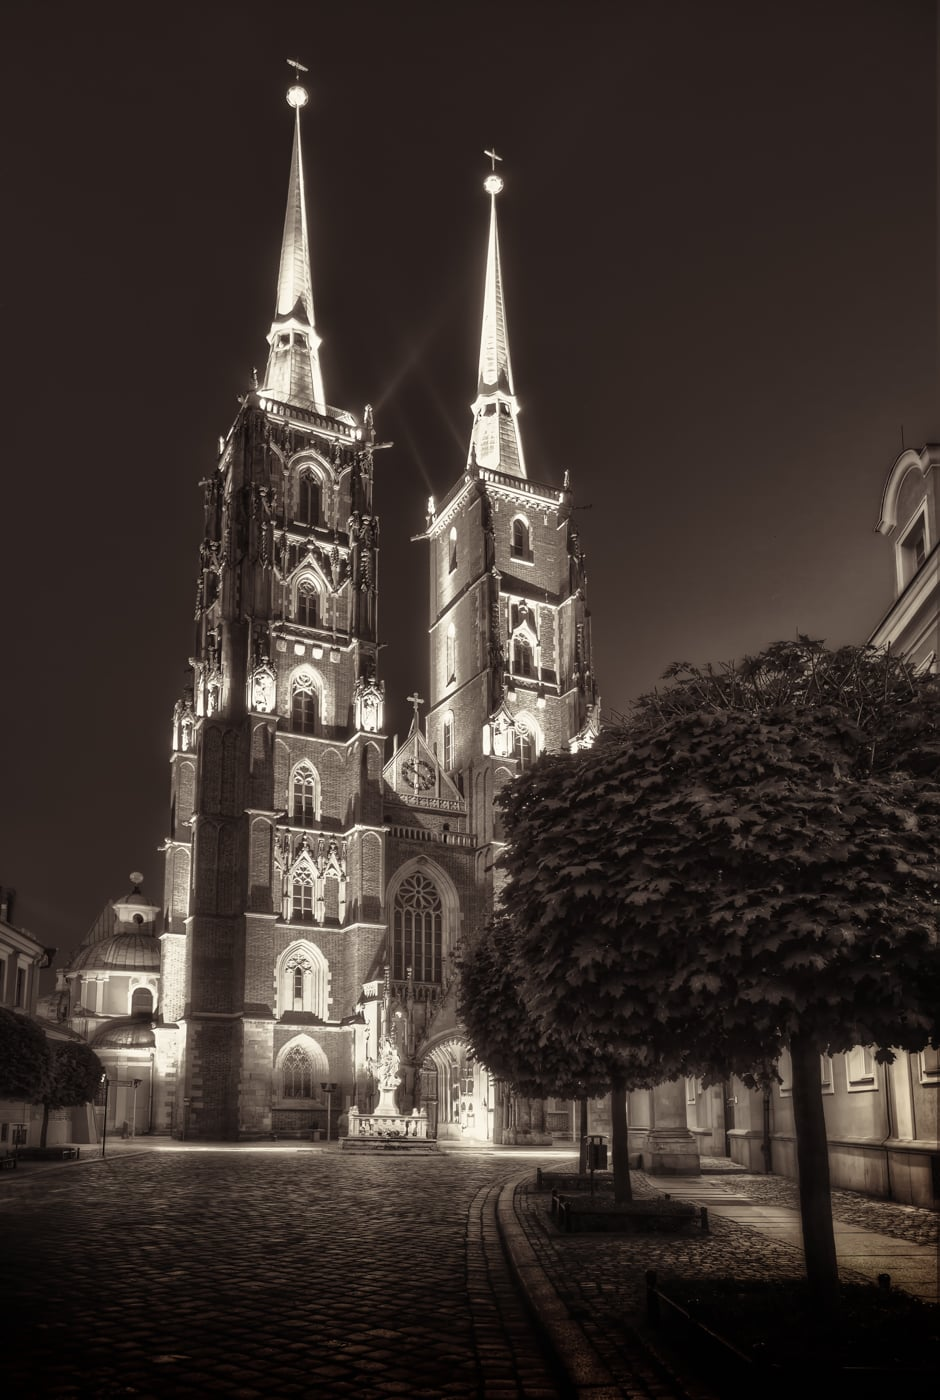 Kathedraal in Wroclaw in de nacht